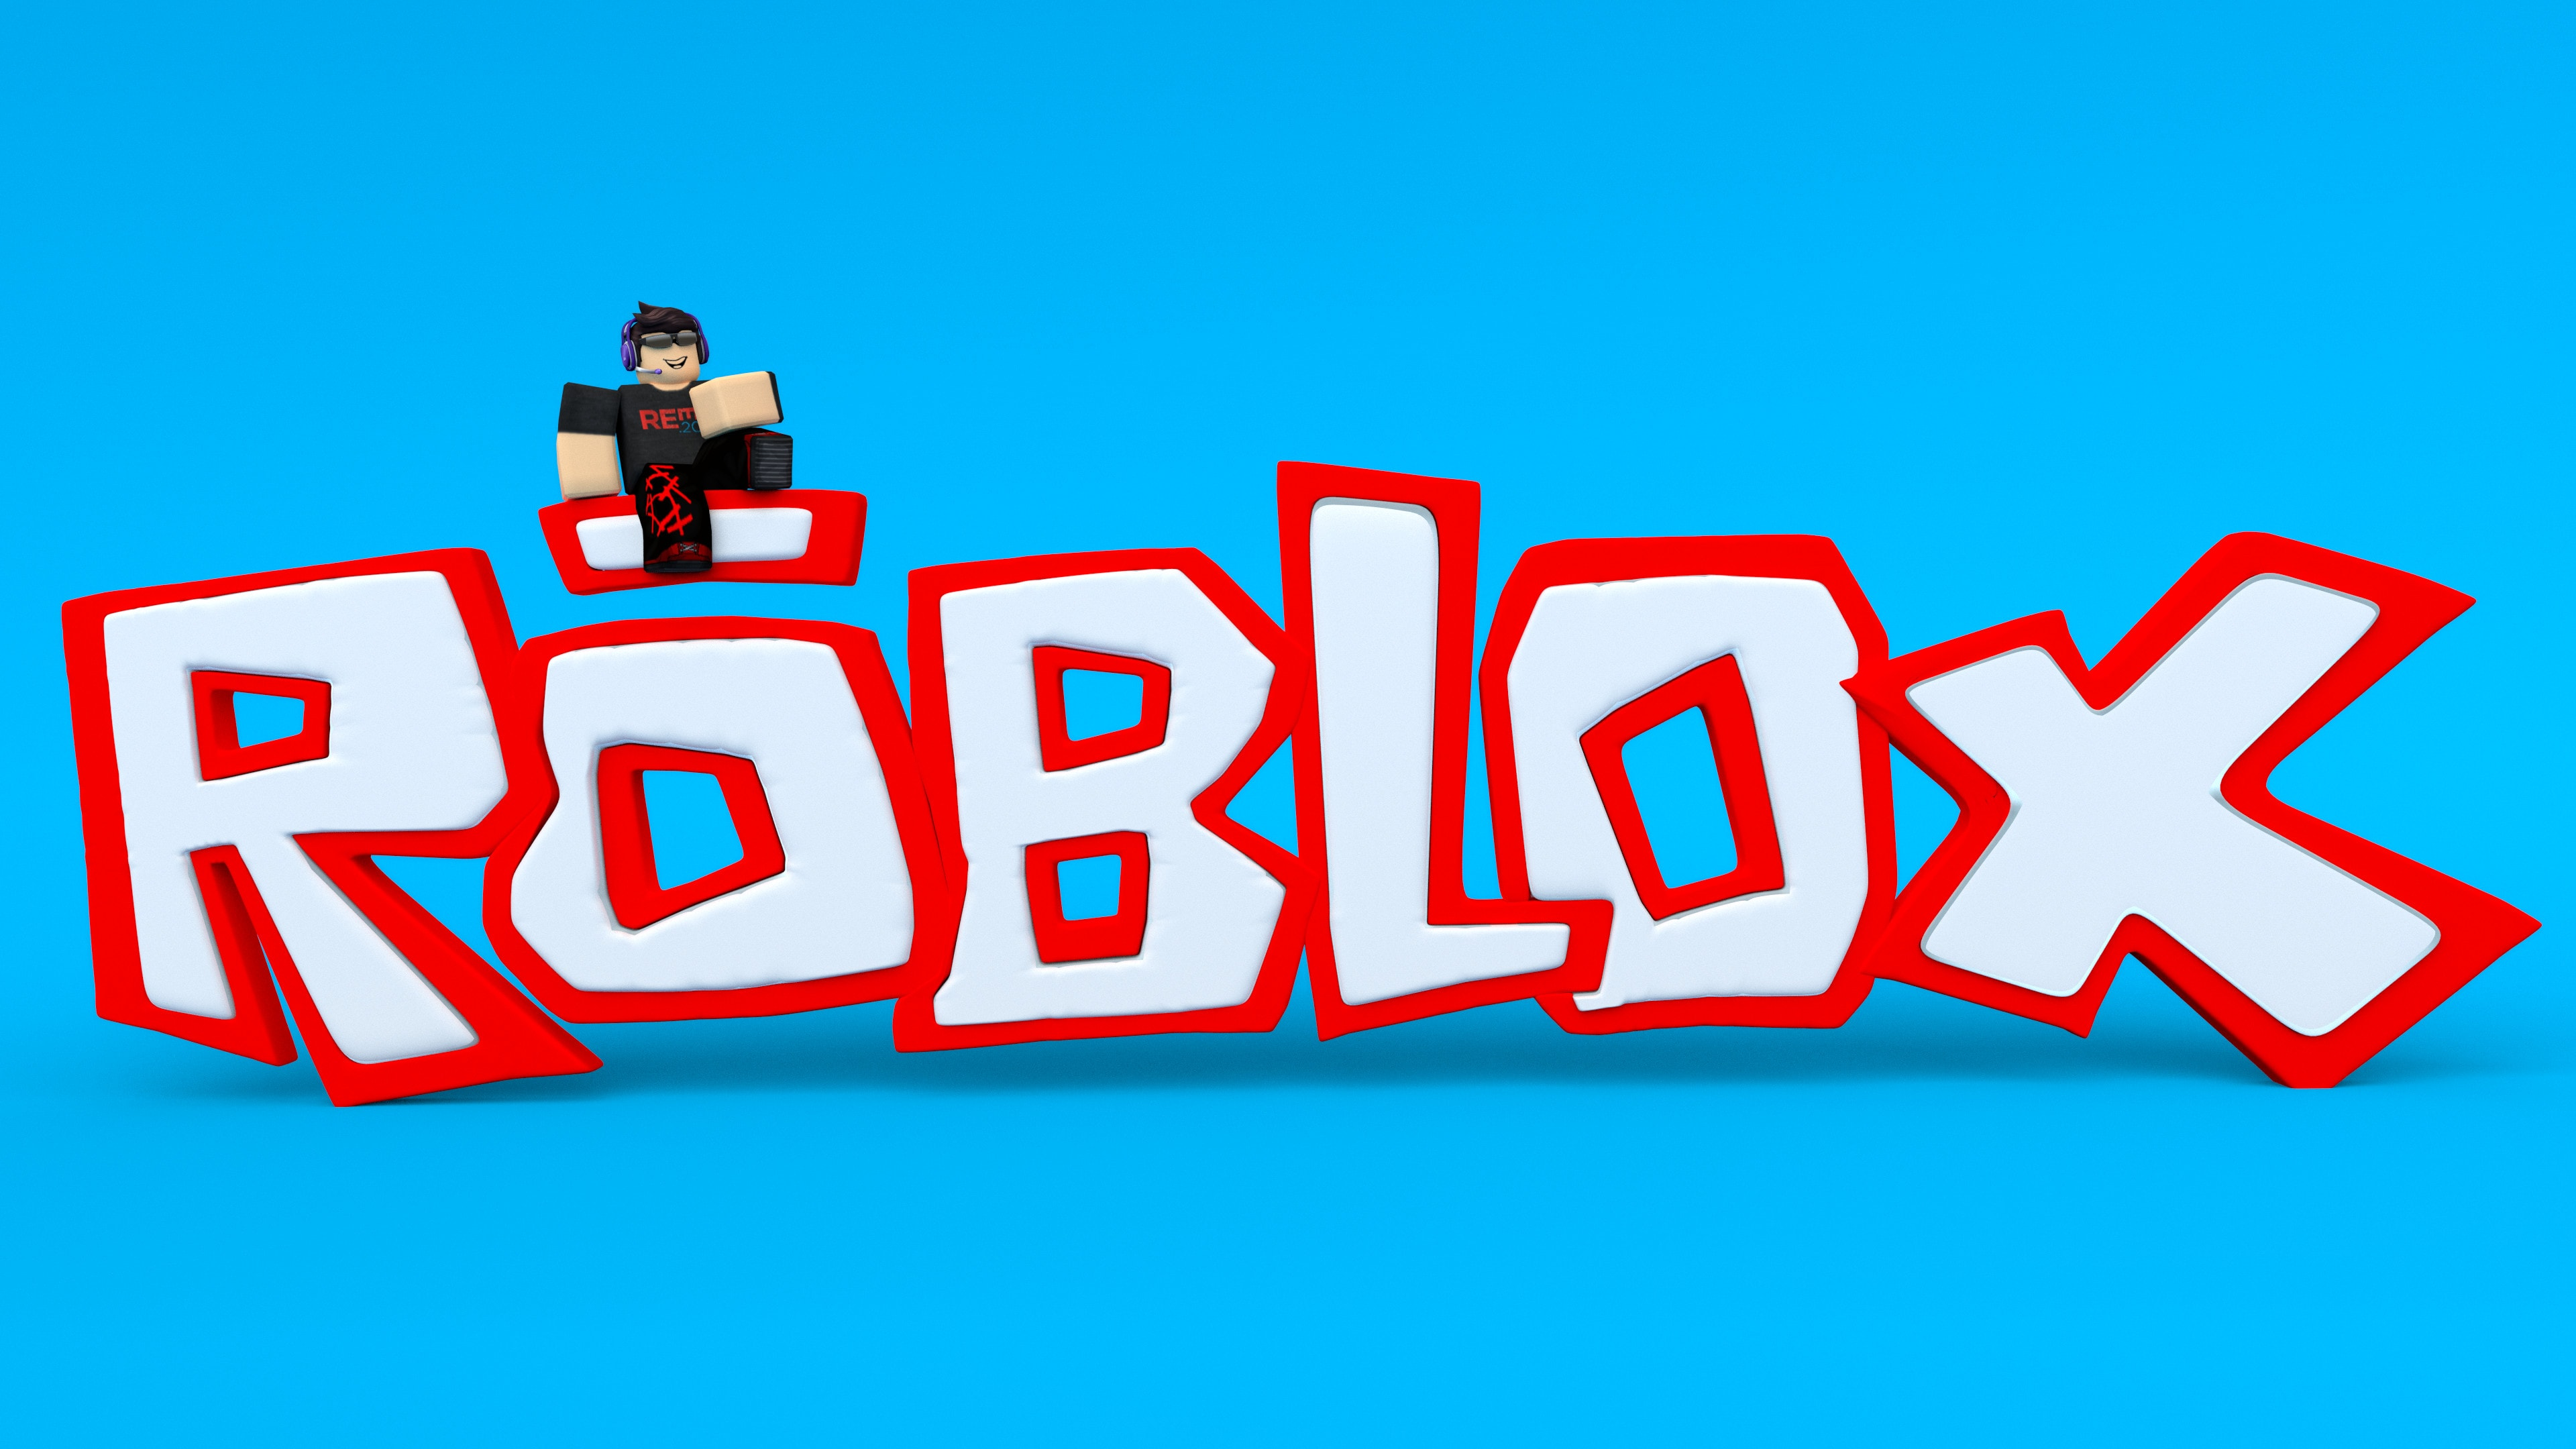 Roblox Background Kolpaper Awesome Free Hd Wallpapers More hd wallpapers of roblox will be added soon. roblox background kolpaper awesome